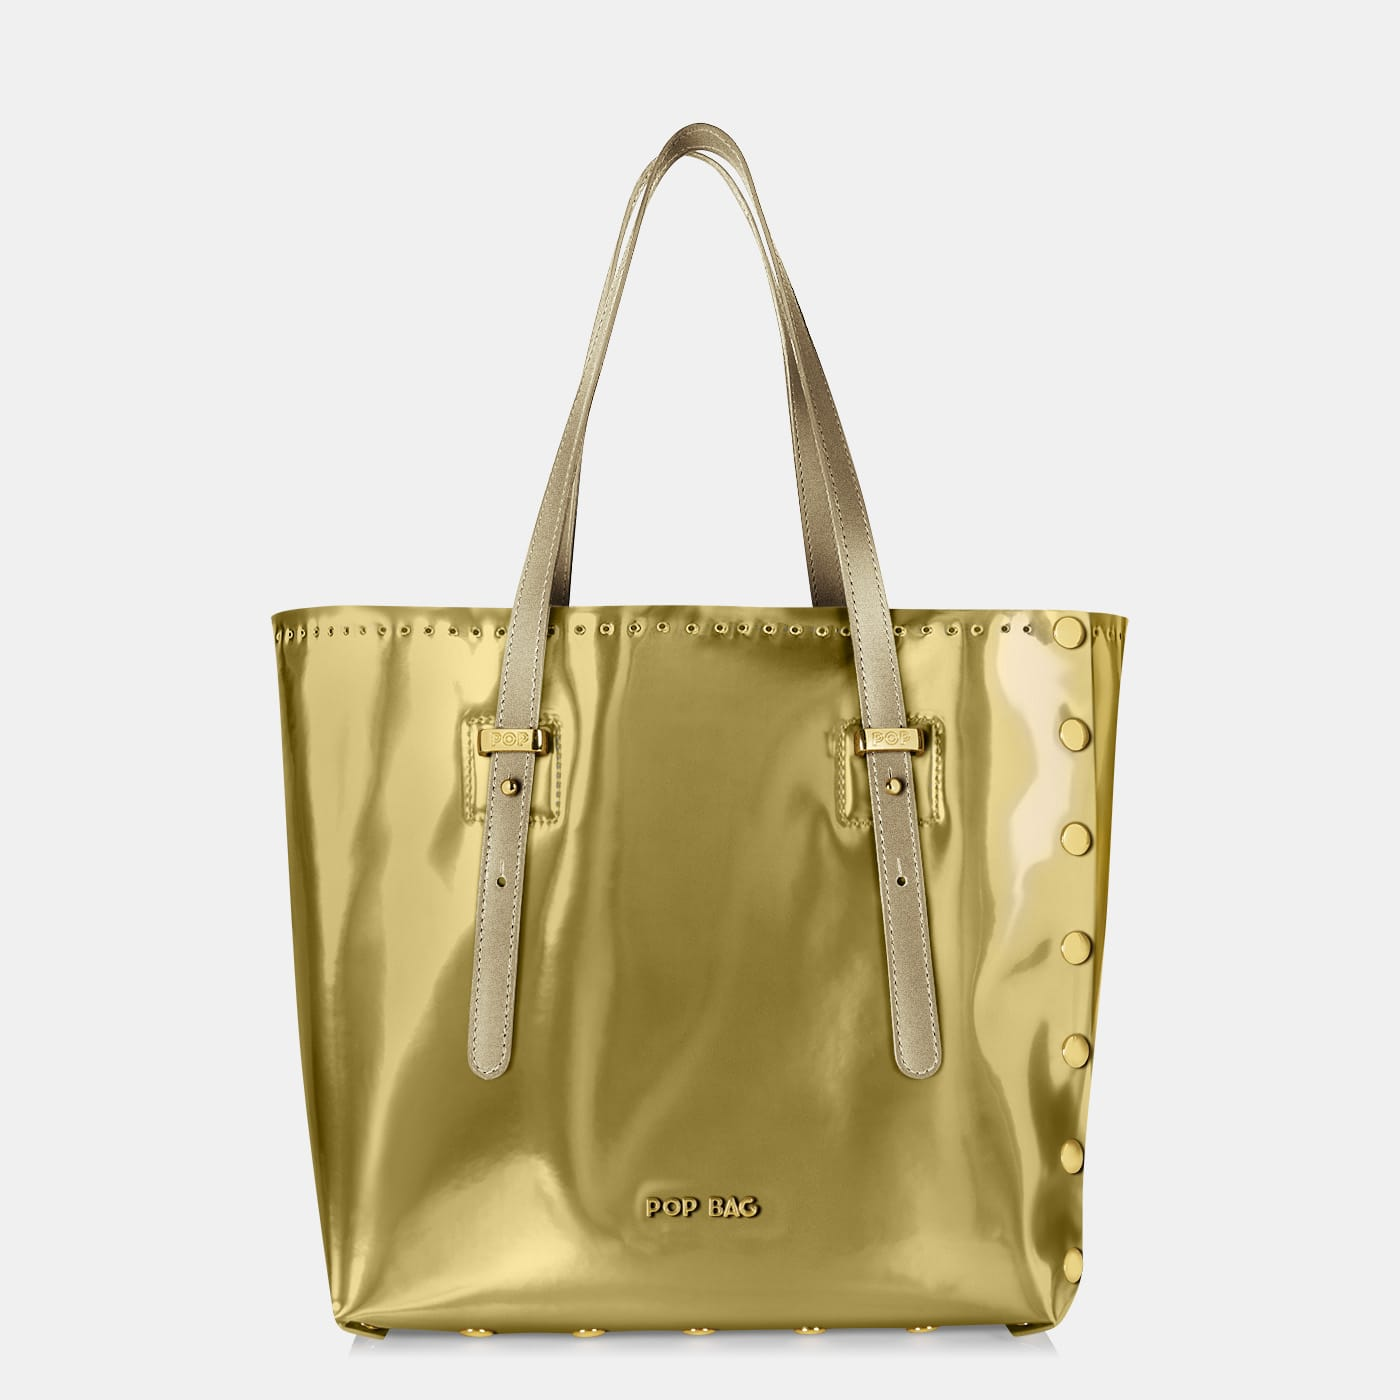 Pop Aurora Bag - Platinum Mirror Iridescent - Medium